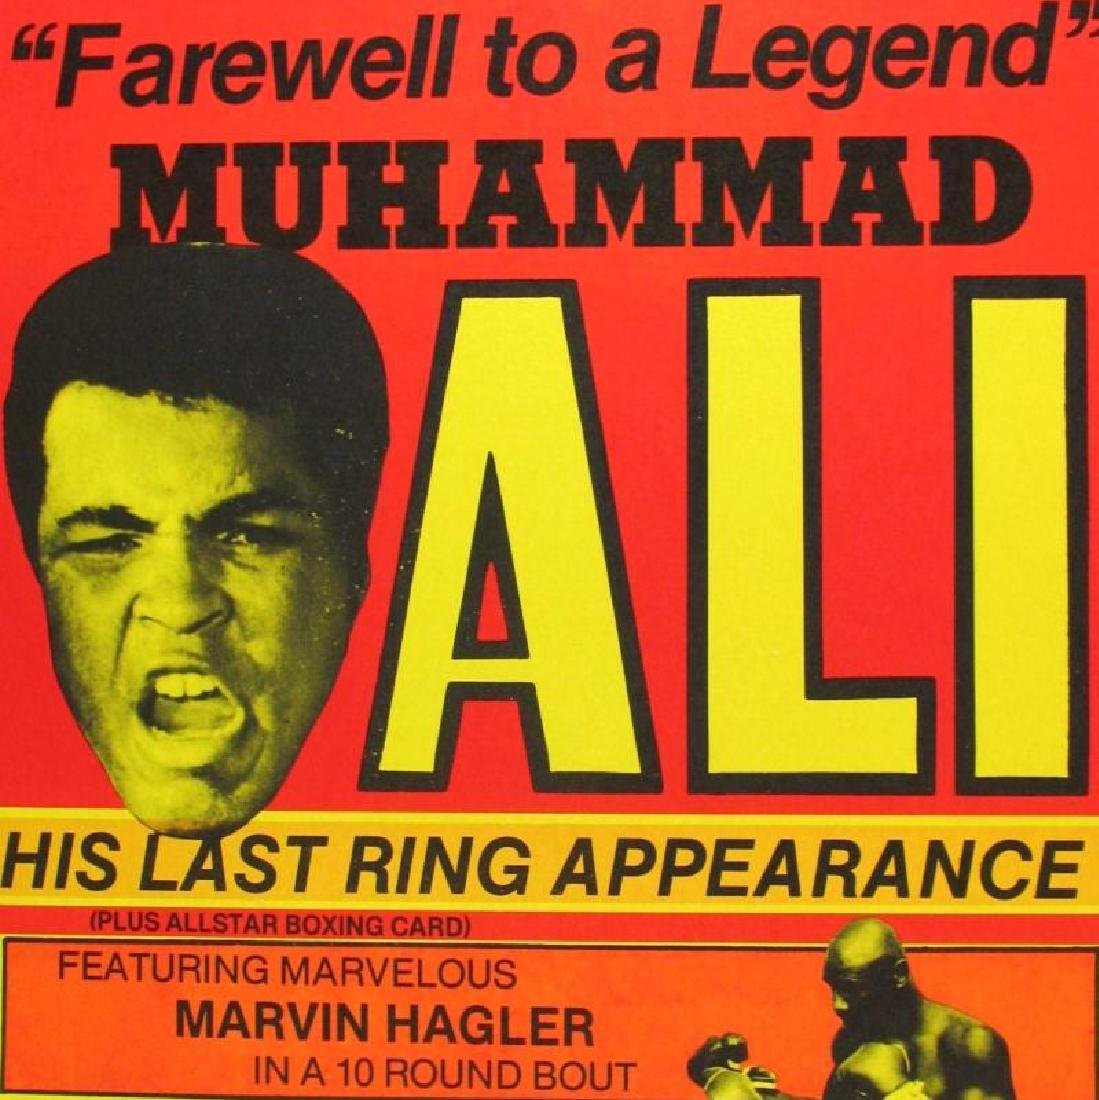 Rare Muhammad Ali Vintage Lithographic Collectible - 2